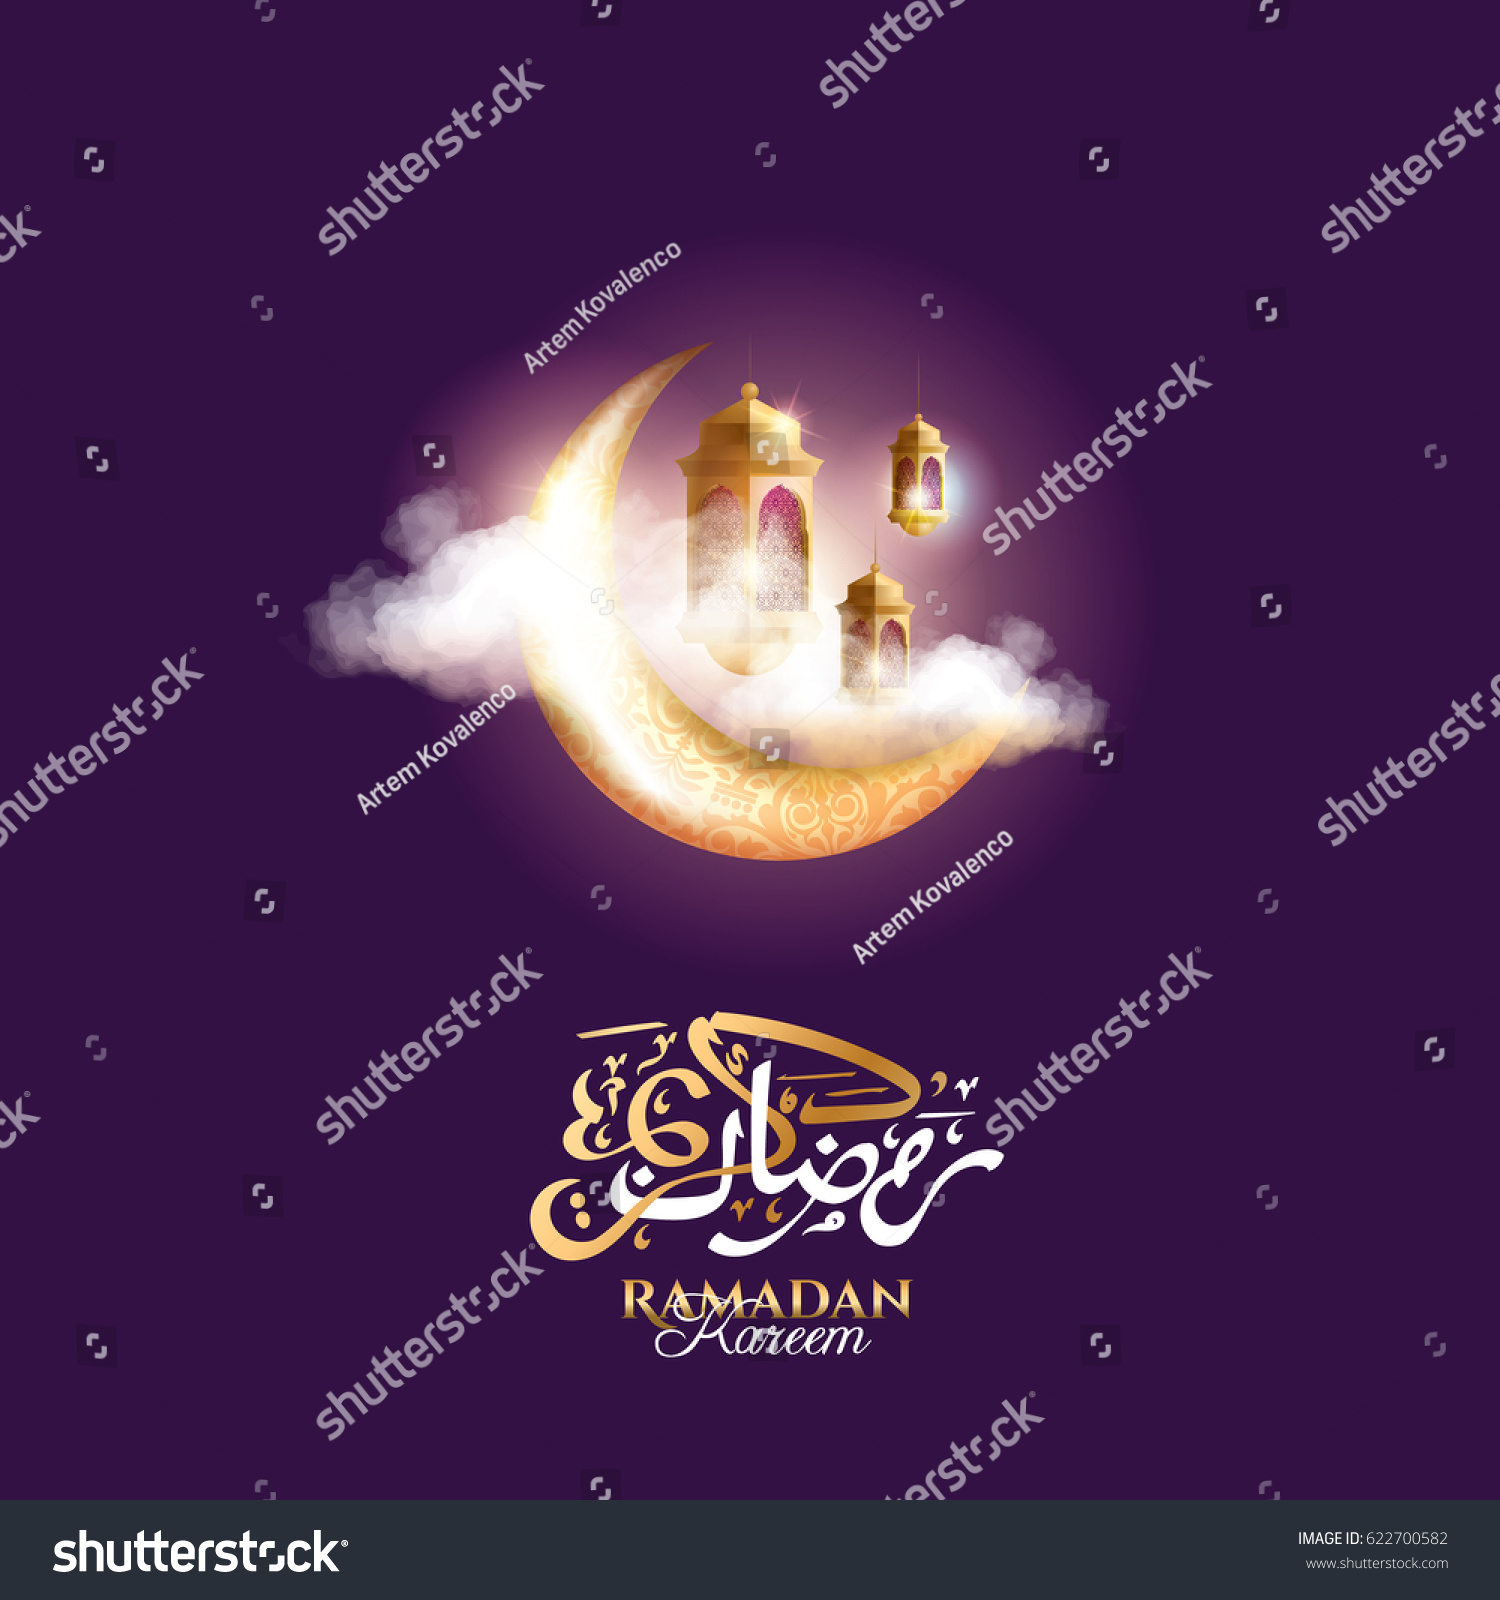 vector illustration of a lantern Fanus. the Muslim feast of the holy month of Ramadan Kareem. Translation from Arabic: Generous Ramadan #622700582